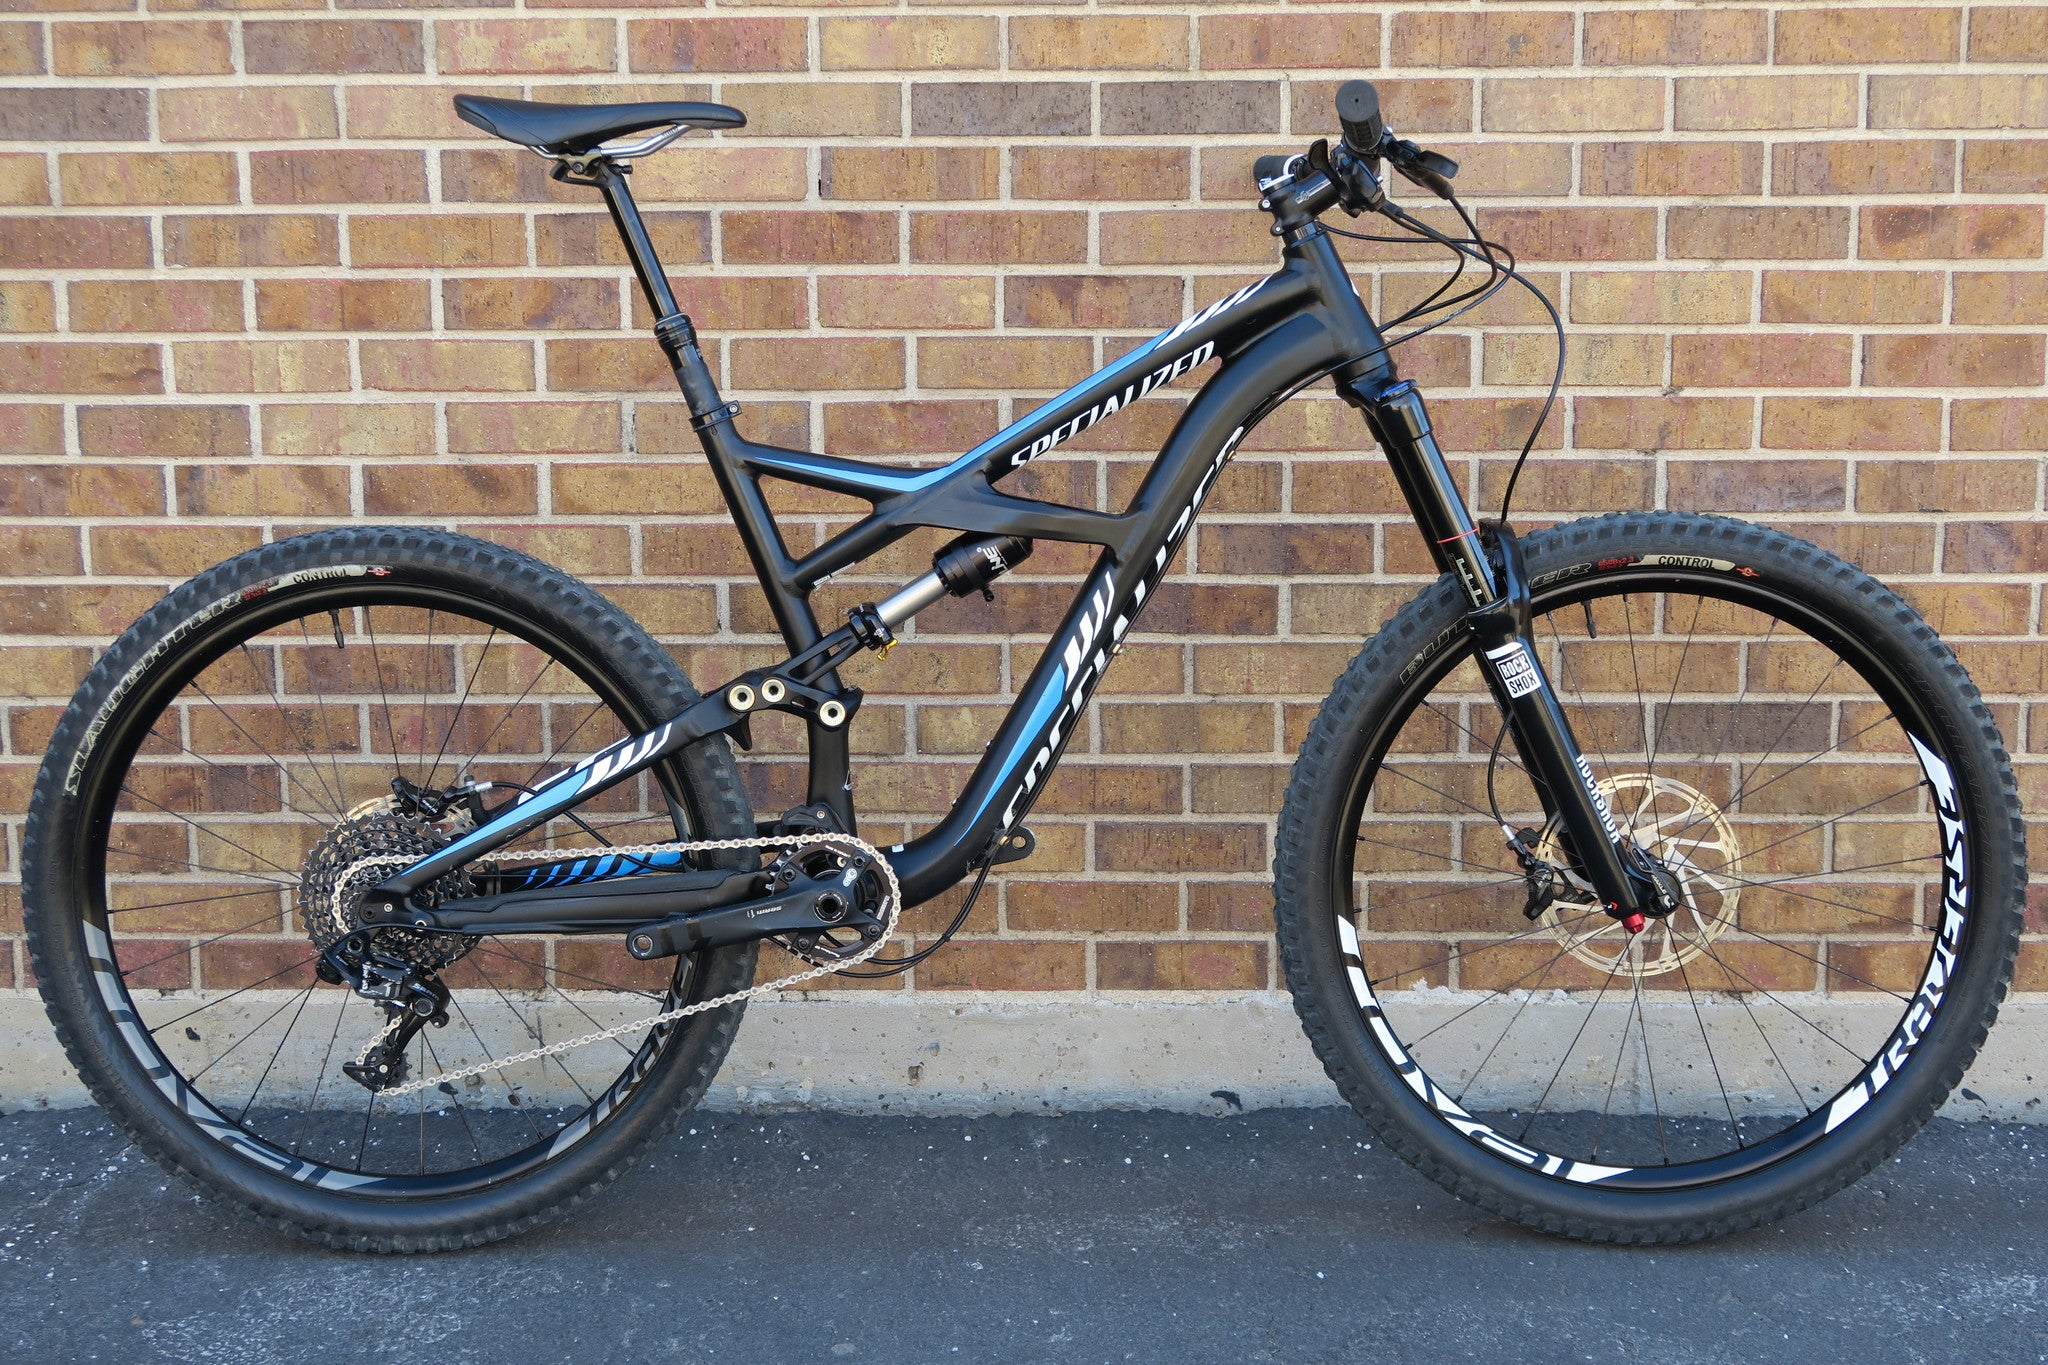 2015 SPECIALIZED ENDURO ELITE 650B 27.5